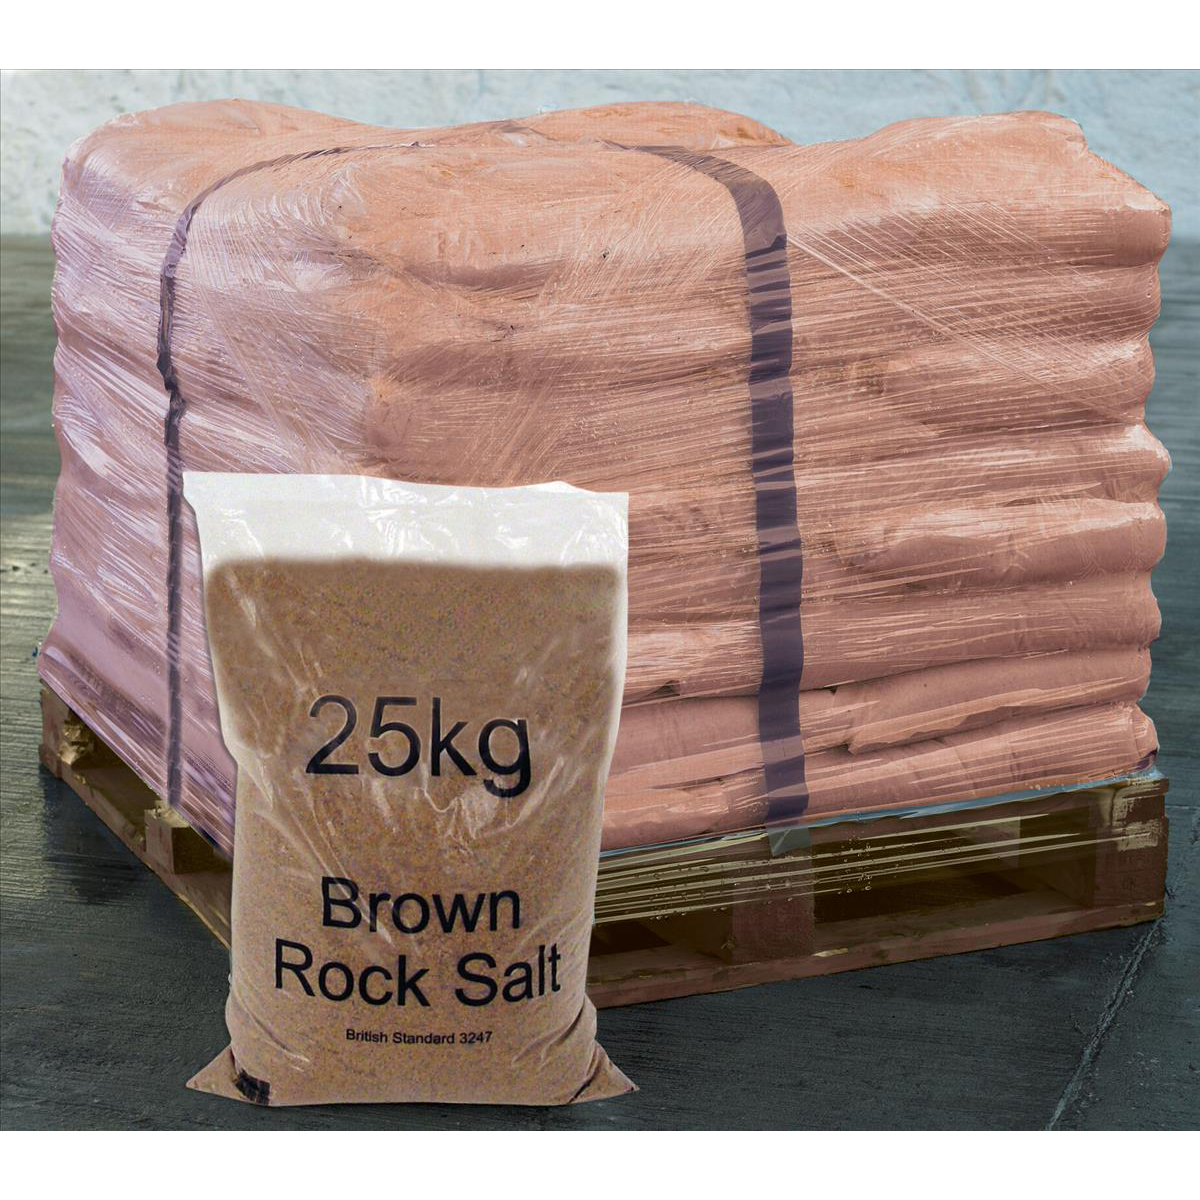 Image for Rock Salt De-icing 25kg Brown [Packed 40]